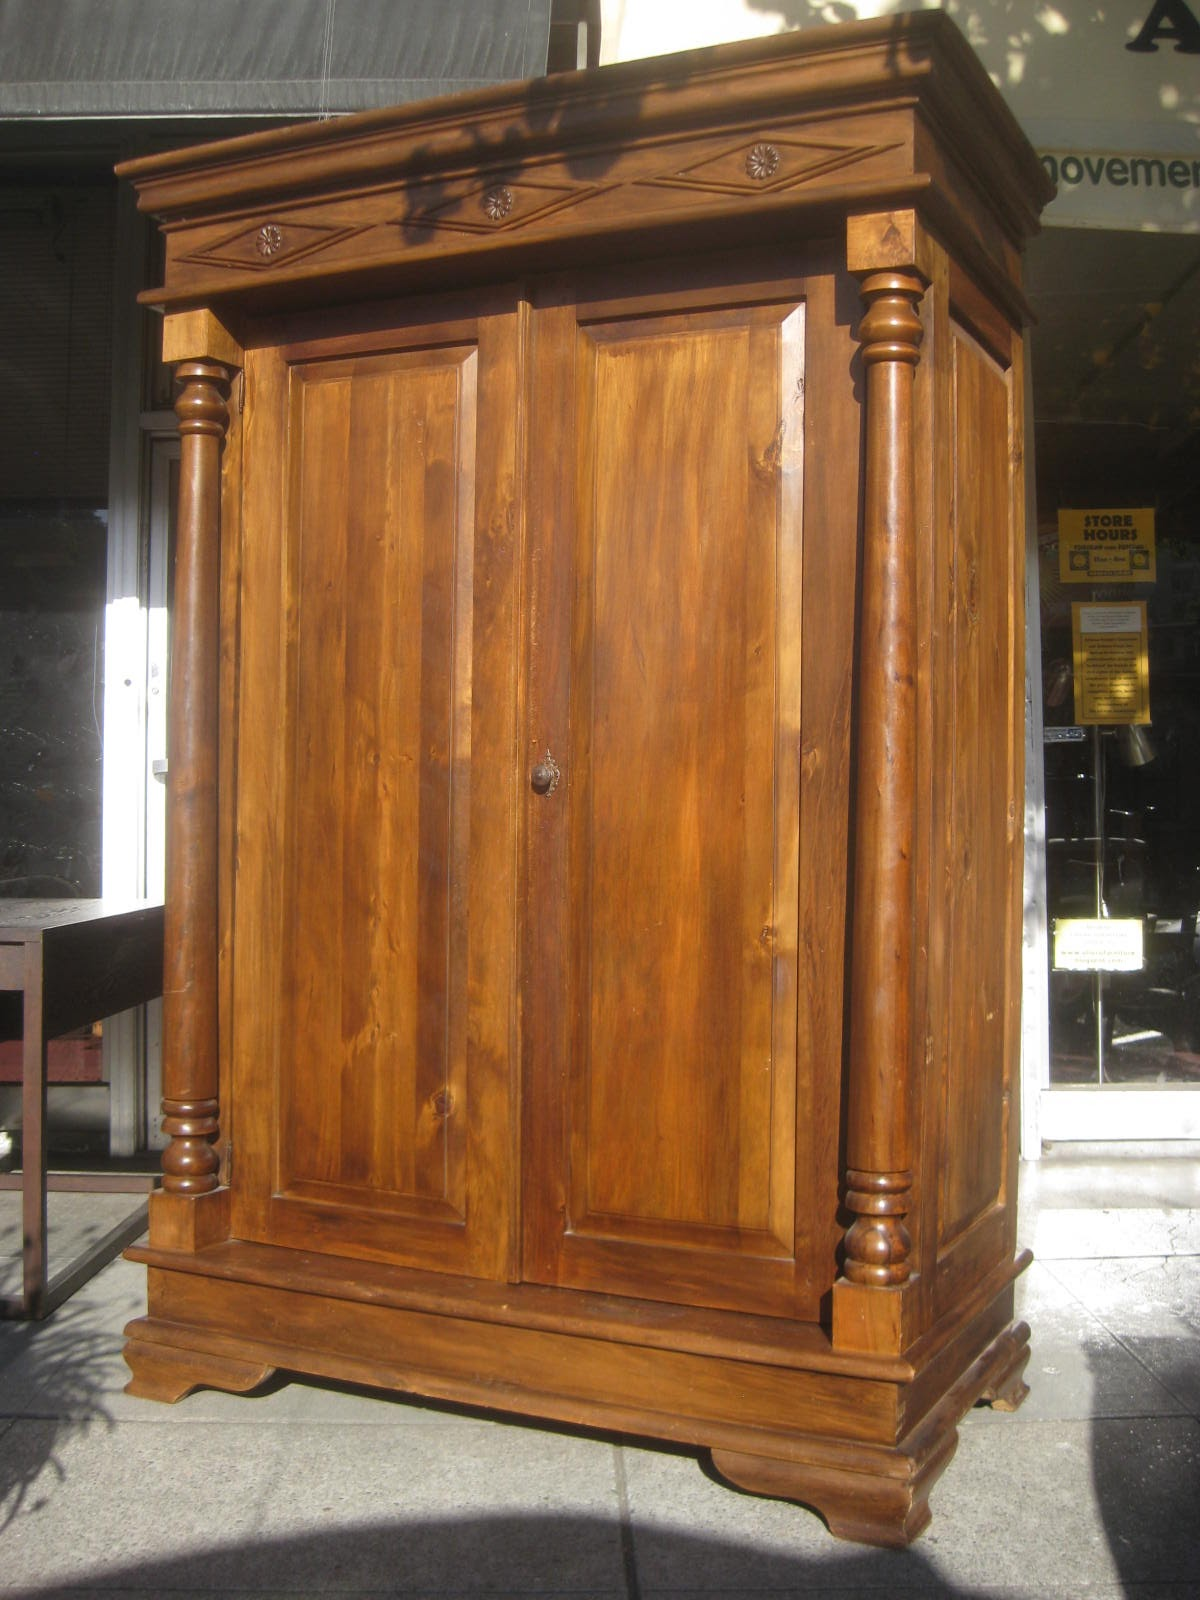 Marvelous photograph of UHURU FURNITURE & COLLECTIBLES: SOLD Large Armoire $200 with #7C4824 color and 1200x1600 pixels